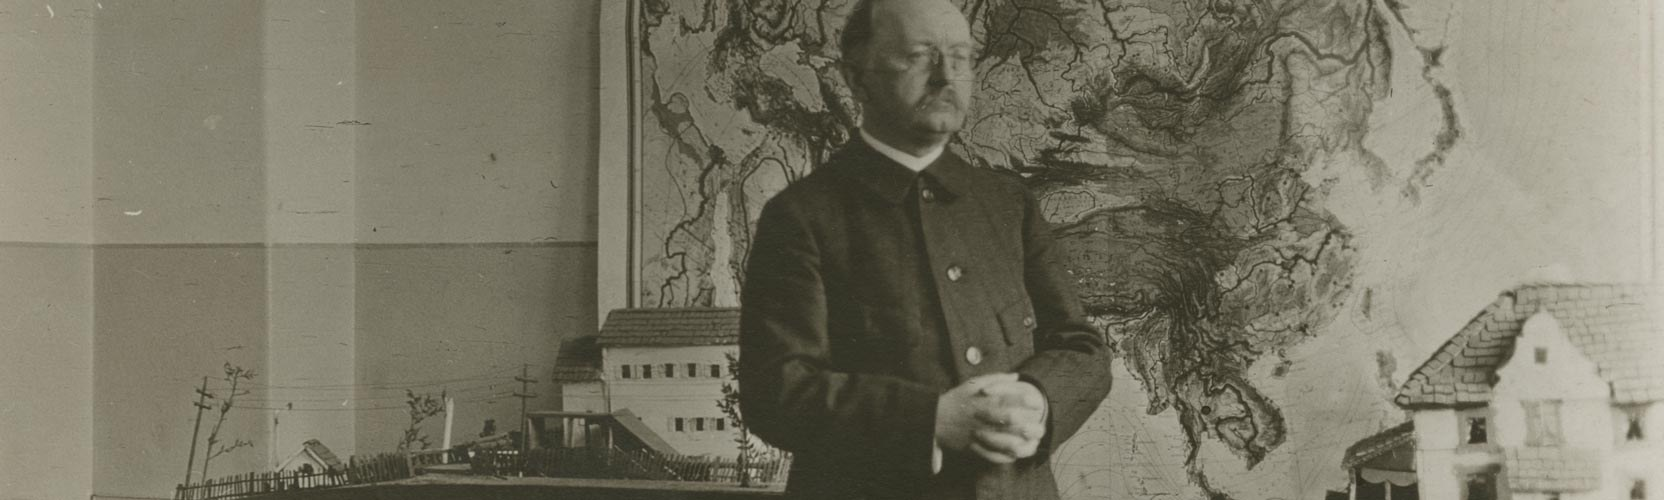 Bethold Otto in his class room